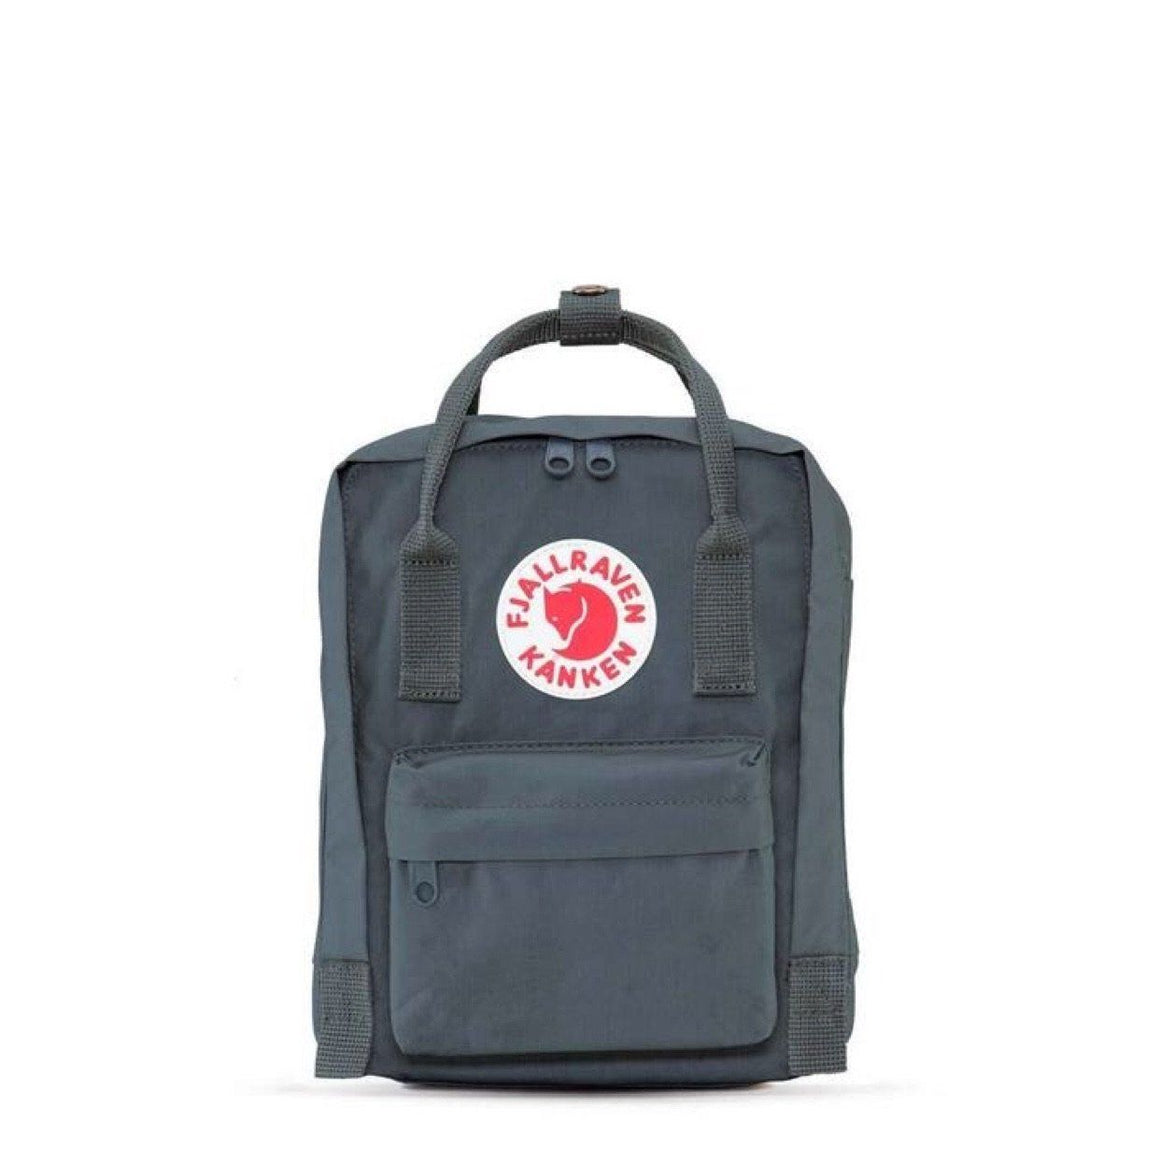 Fjallraven - Kanken Mini 7L Back Pack - Graphite Backpack Fjallraven